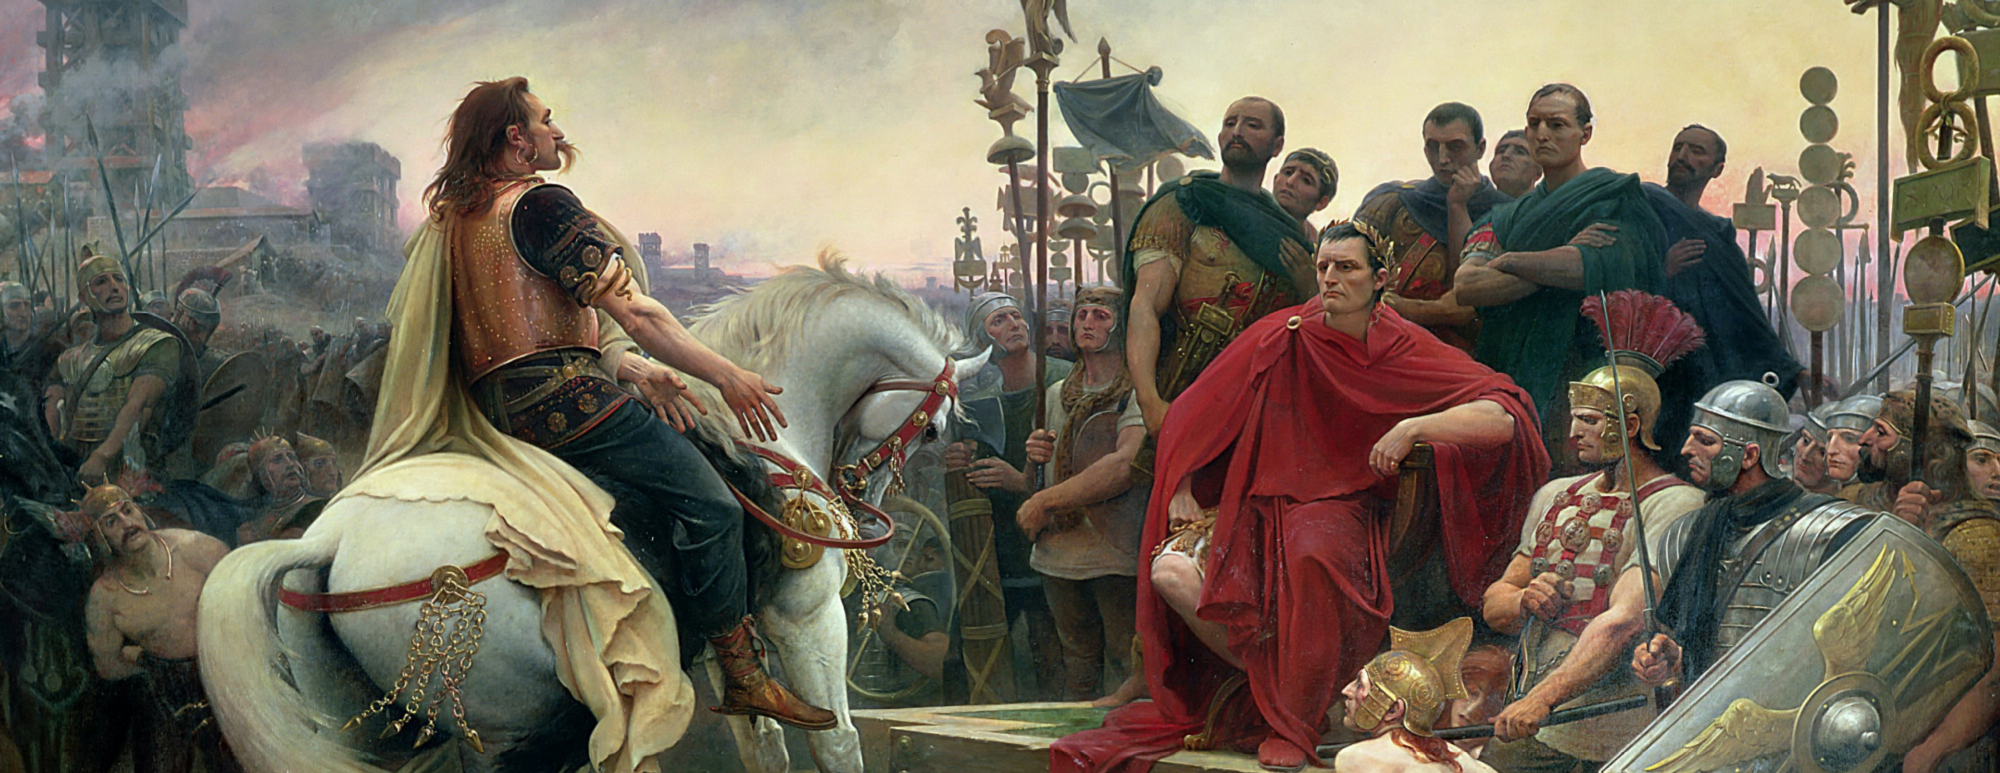 julius caesar political campaign speech Reader approved how to write a campaign speech four methods: sample speeches delivering your own student council speech structuring a campaign speech writing a political stump speech community q&a.